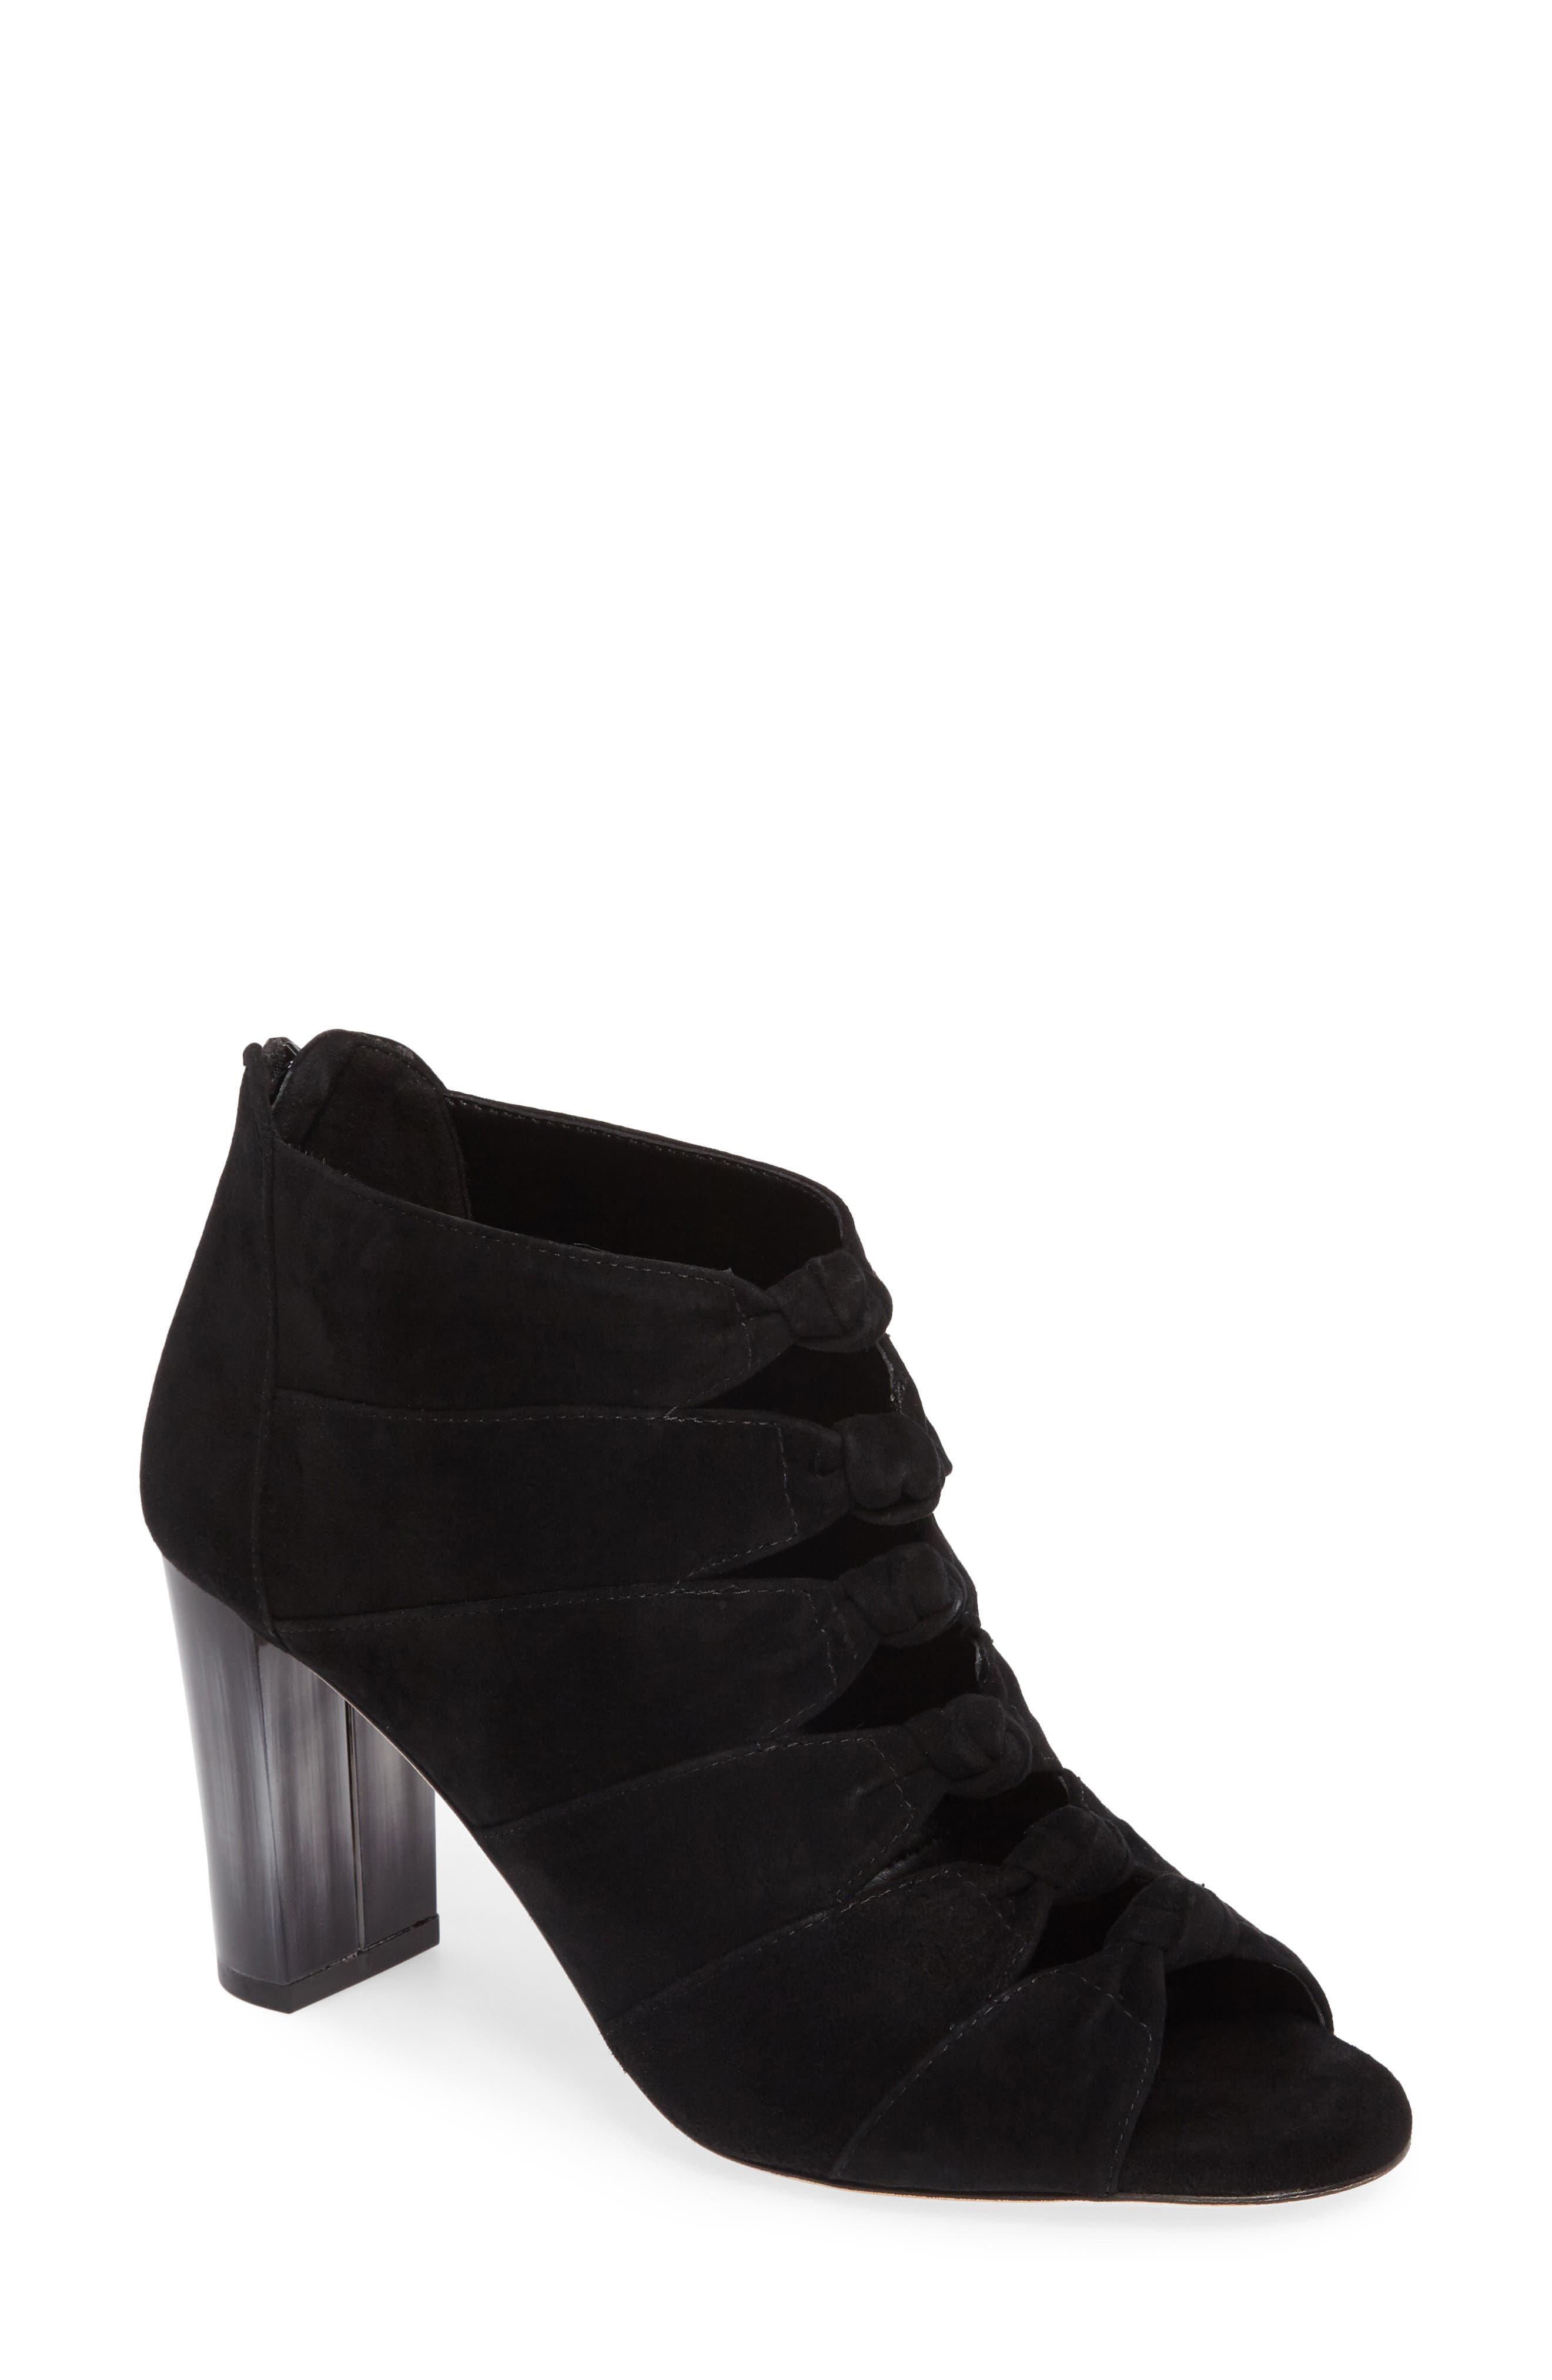 Betsy Open Toe Bootie,                         Main,                         color, 001